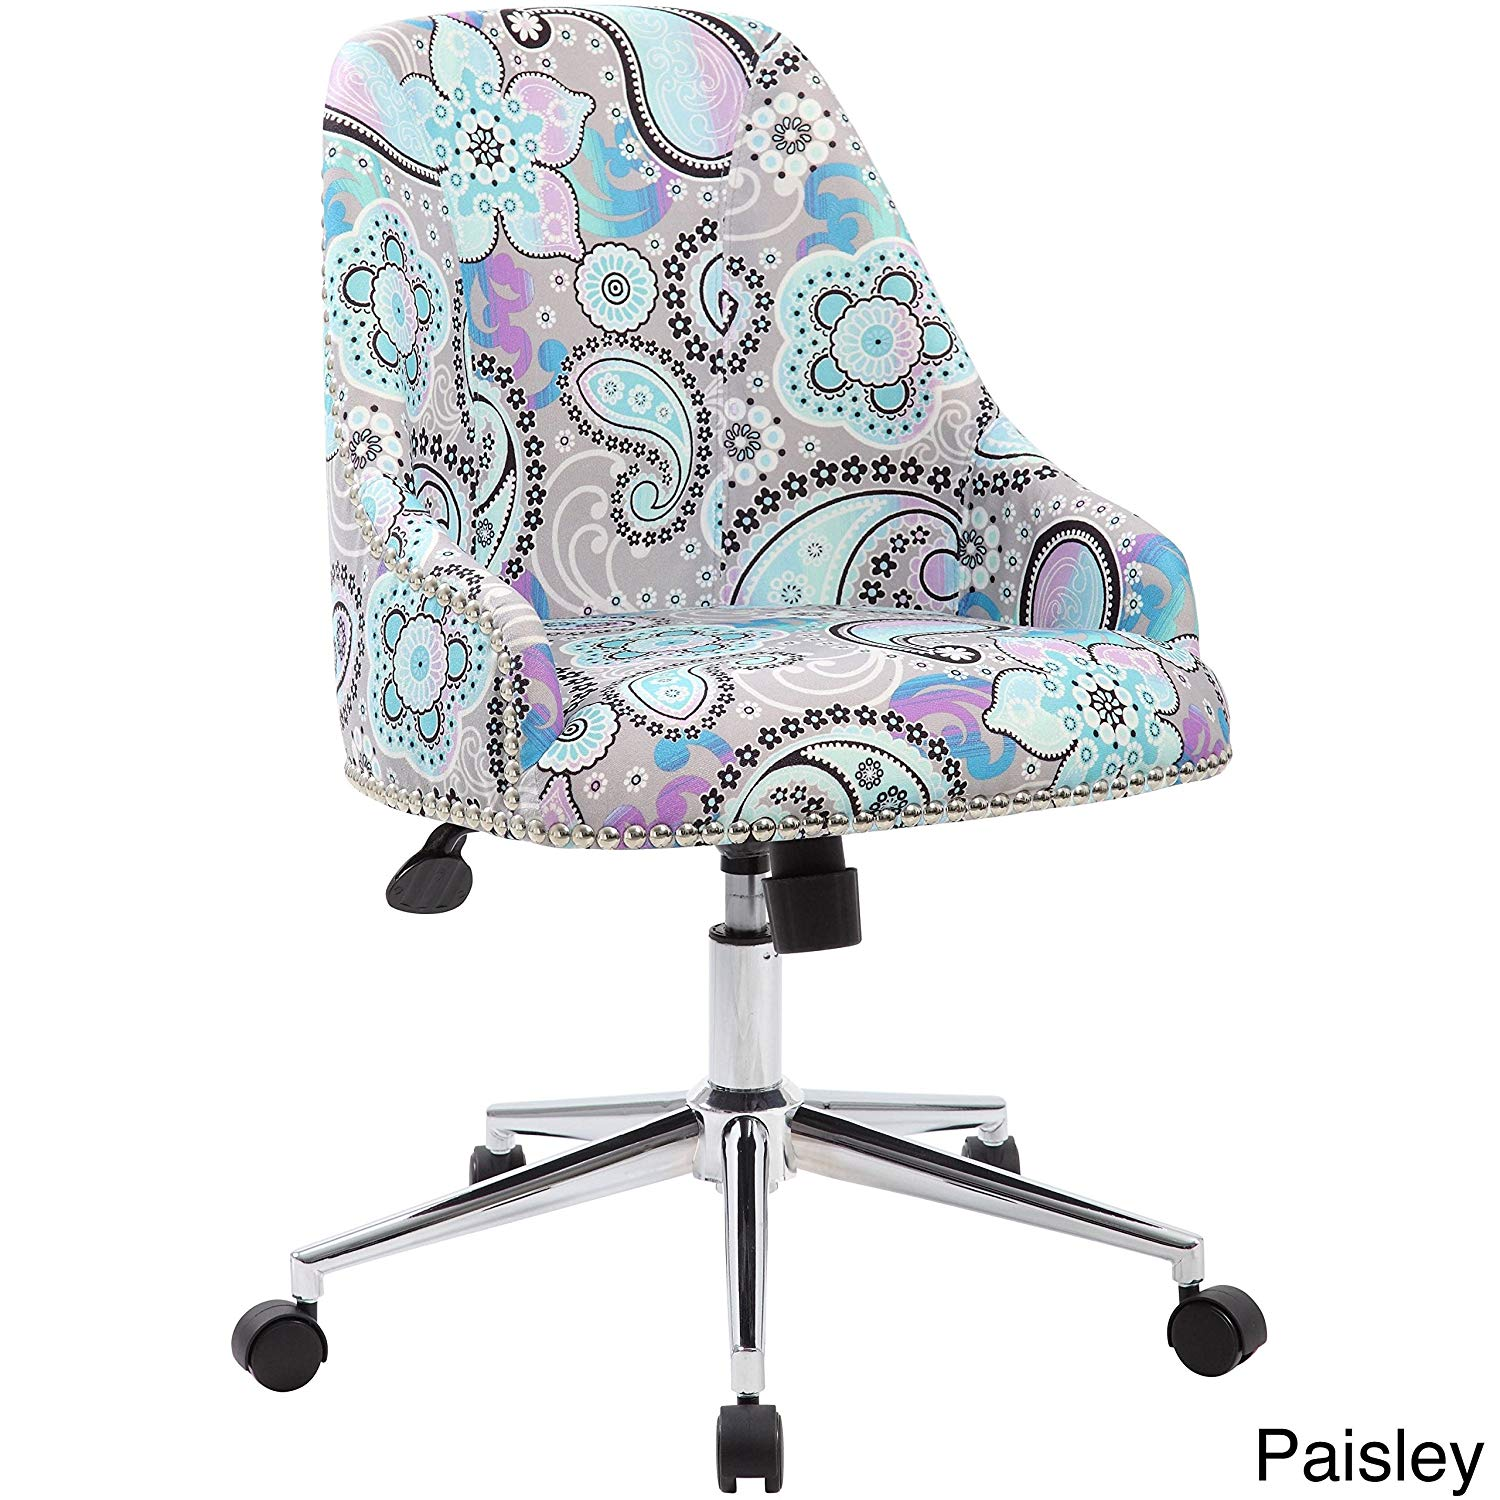 Fabric and Chrome Desk Chair, Sturdy, Silver Nail-Head Trim, Pneumatic Gas Lift Seat Height Adjustment, Upright Locking Position, Adjustable Tilt Tension Control, Compact Design, Multiple Colors